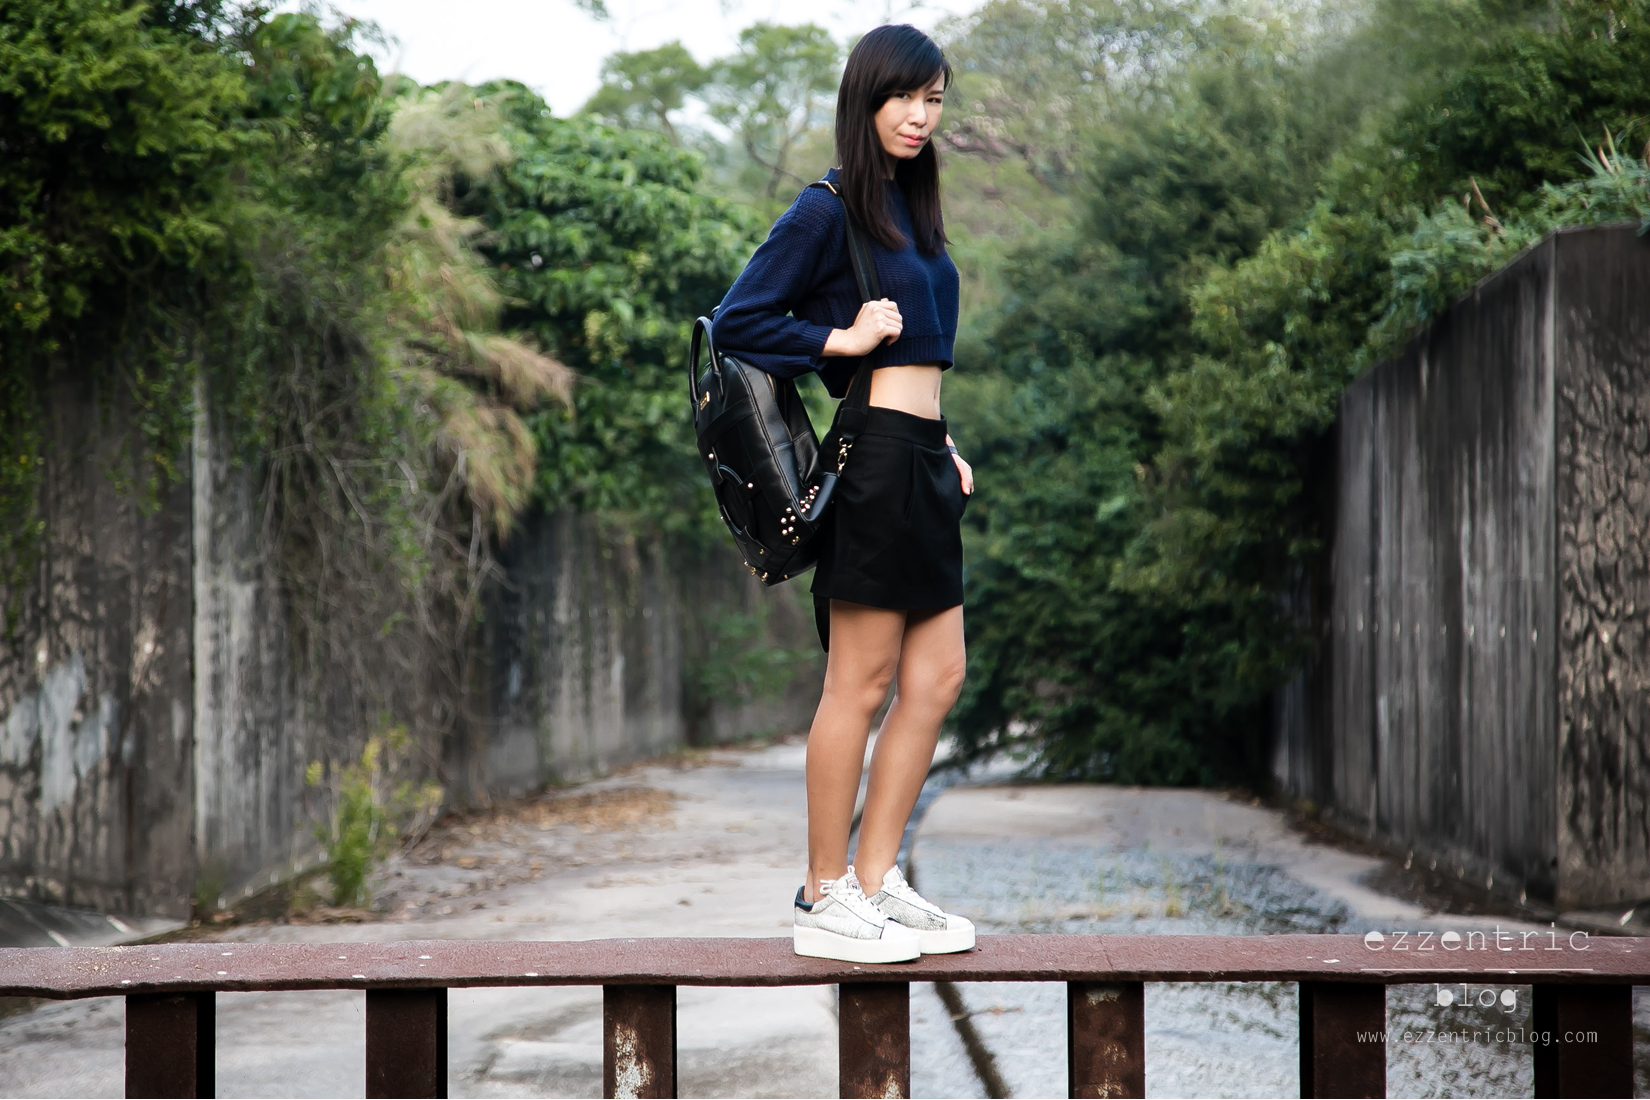 Armani Watch , Ash Platform Sneakers , Backpack Outfit 03